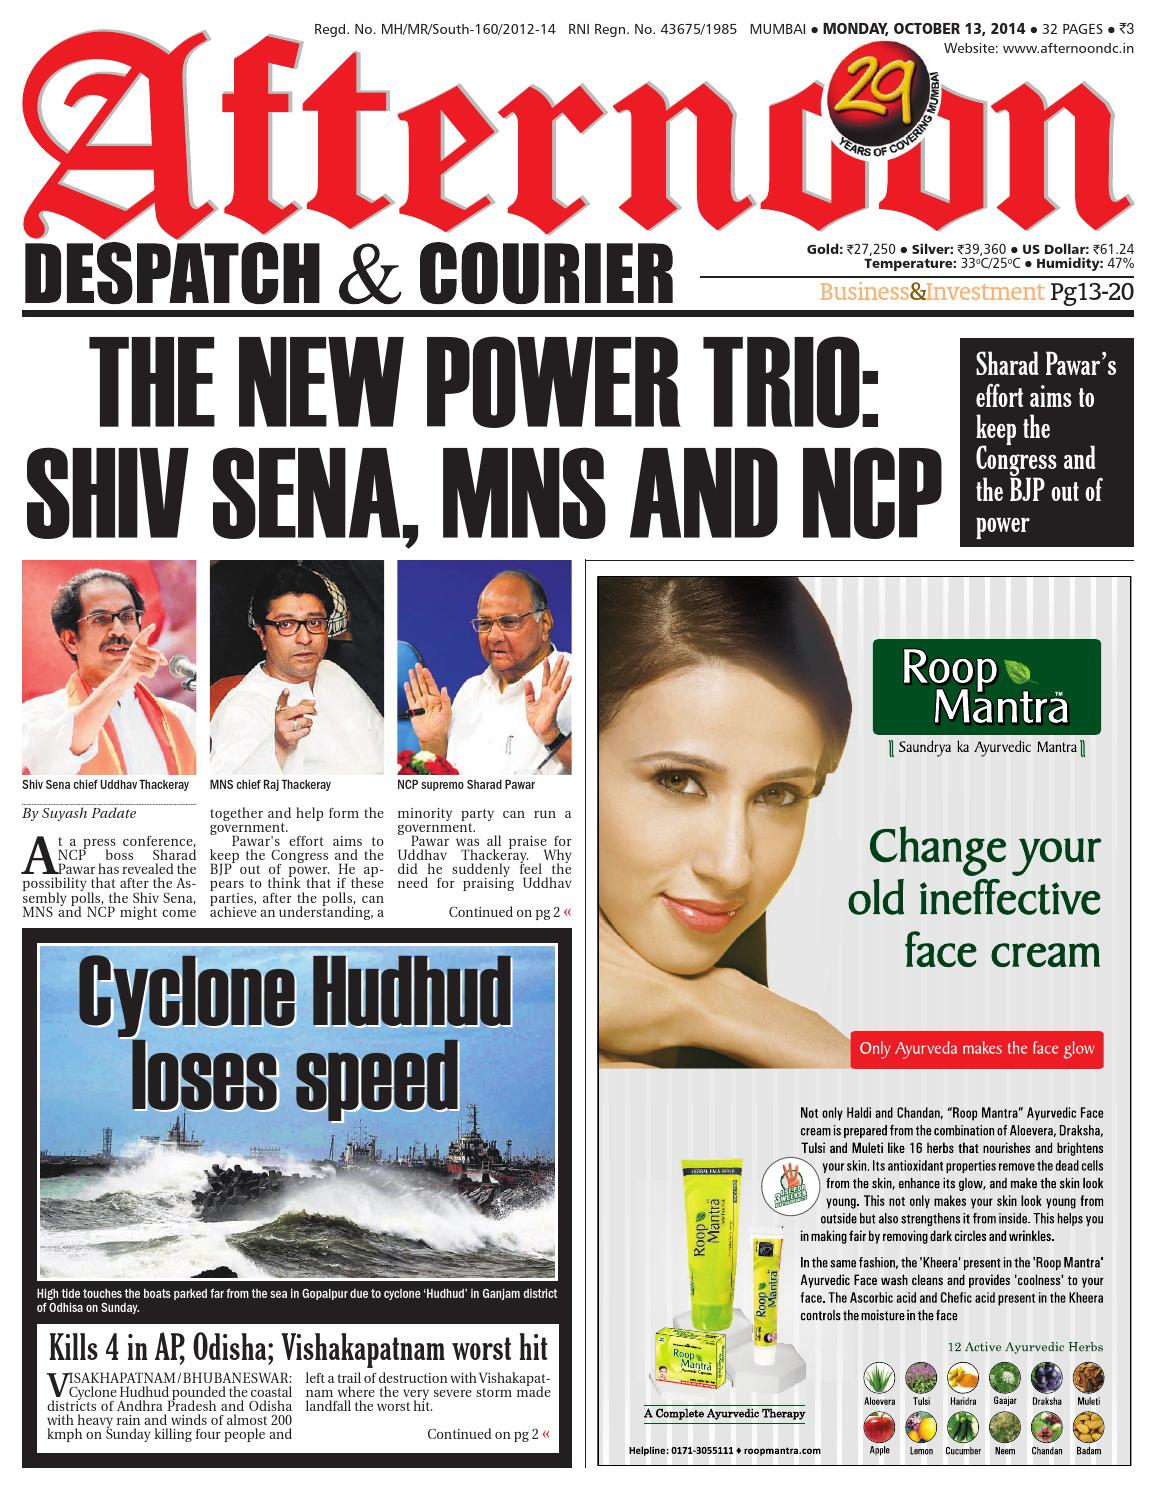 13 oct 2014 by Afternoon Despatch & Courier - issuu